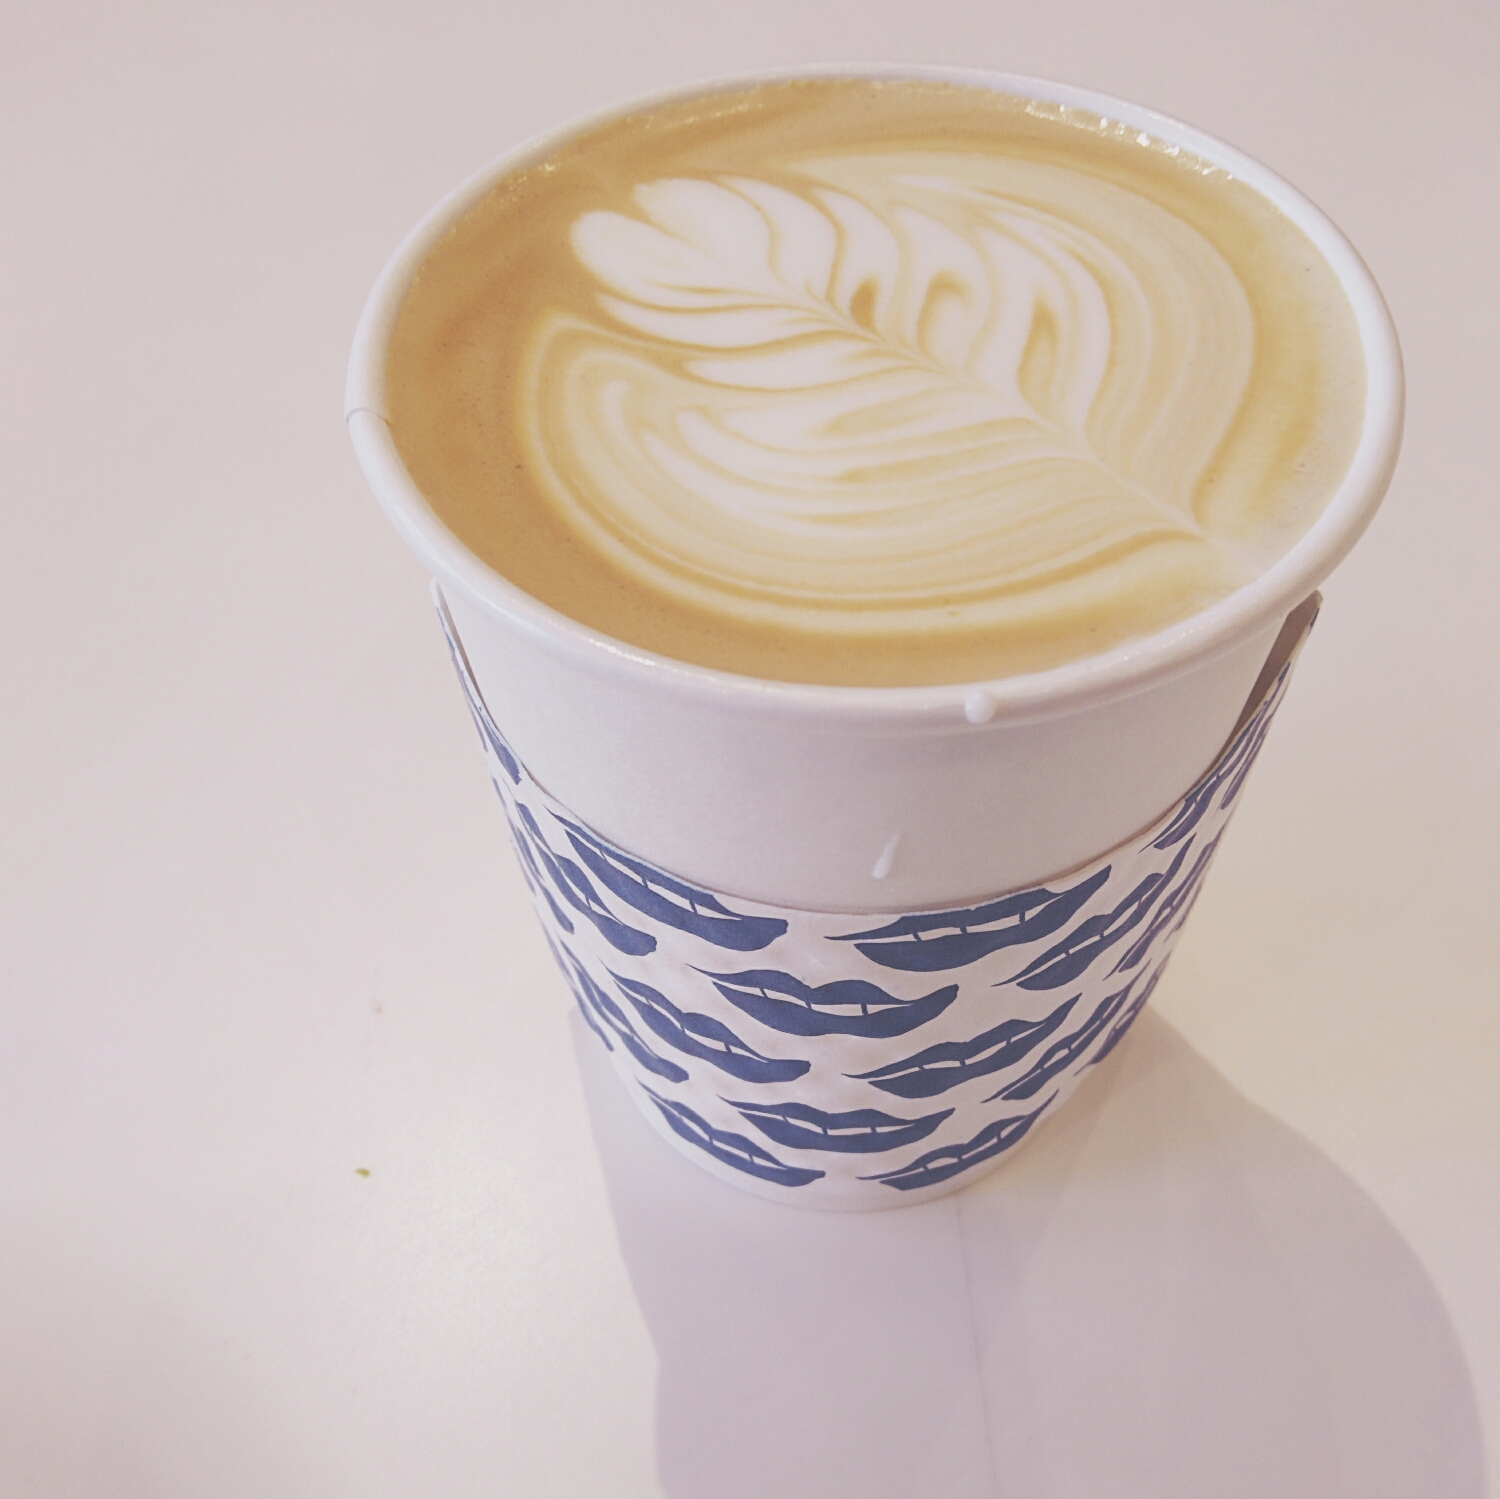 expertly poured latte.